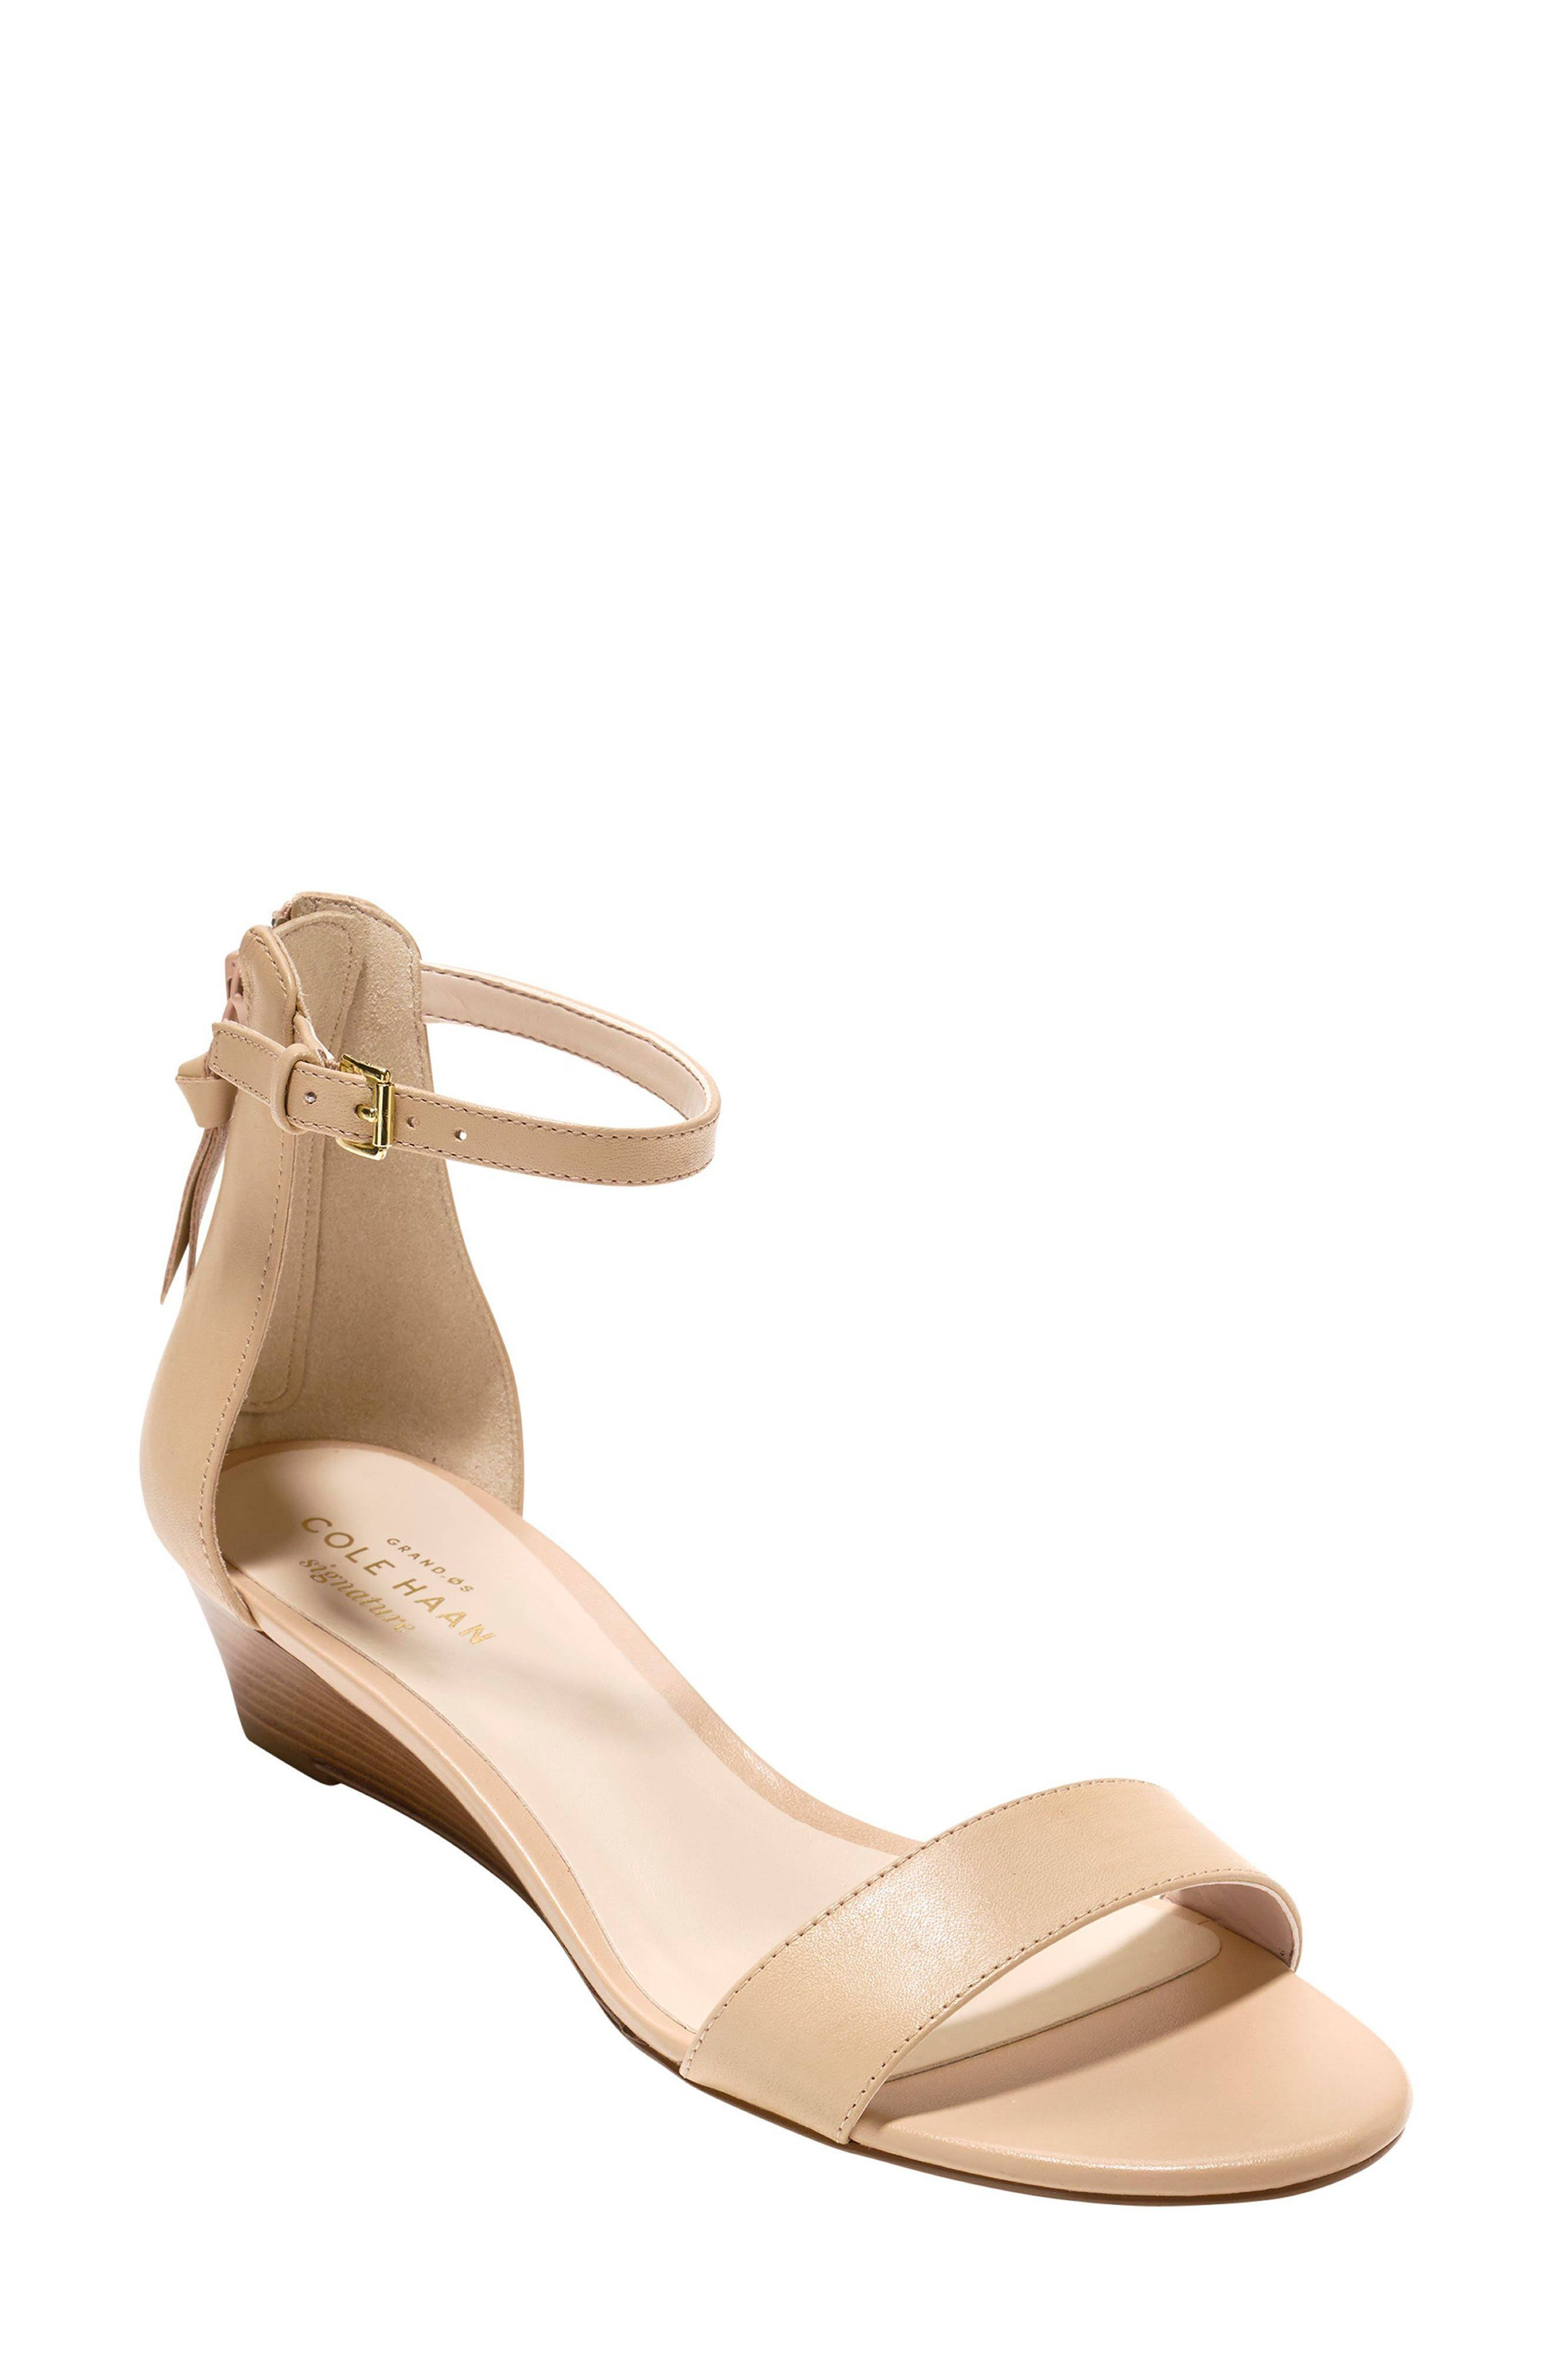 Adderly Sandal,                             Main thumbnail 1, color,                             NUDE LEATHER